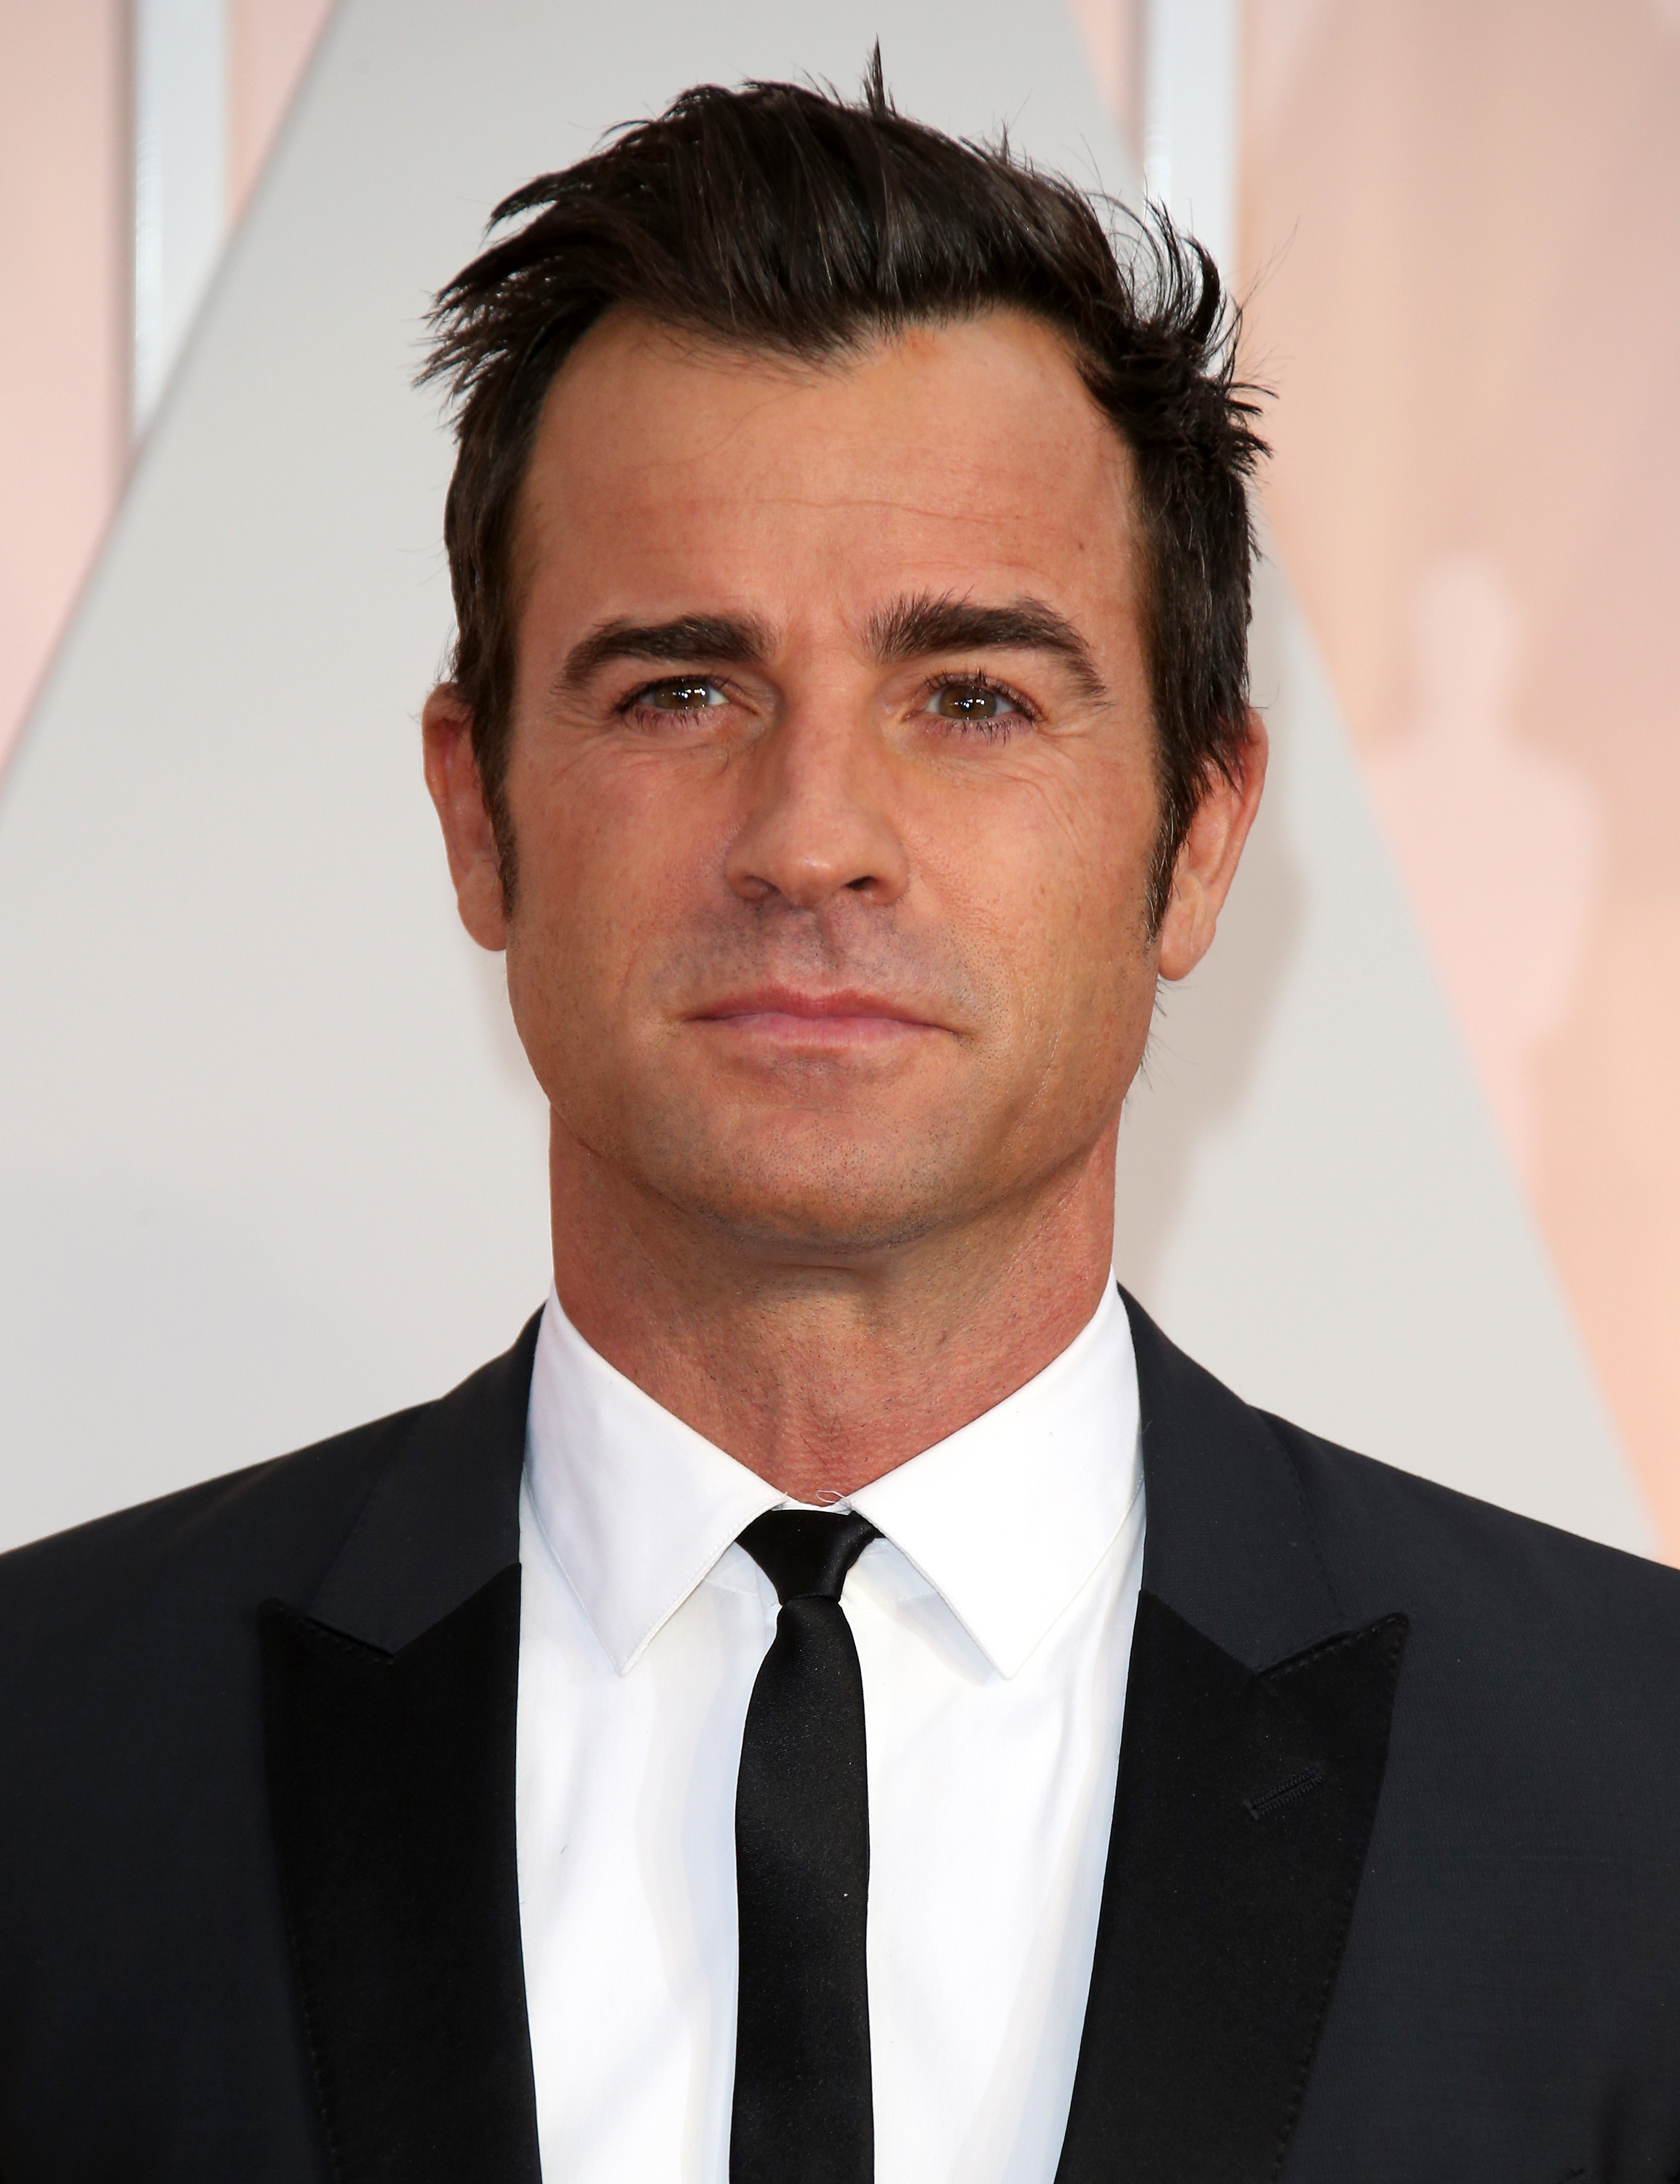 Justin Theroux at the 87th Annual Academy Awards in Los Angeles.